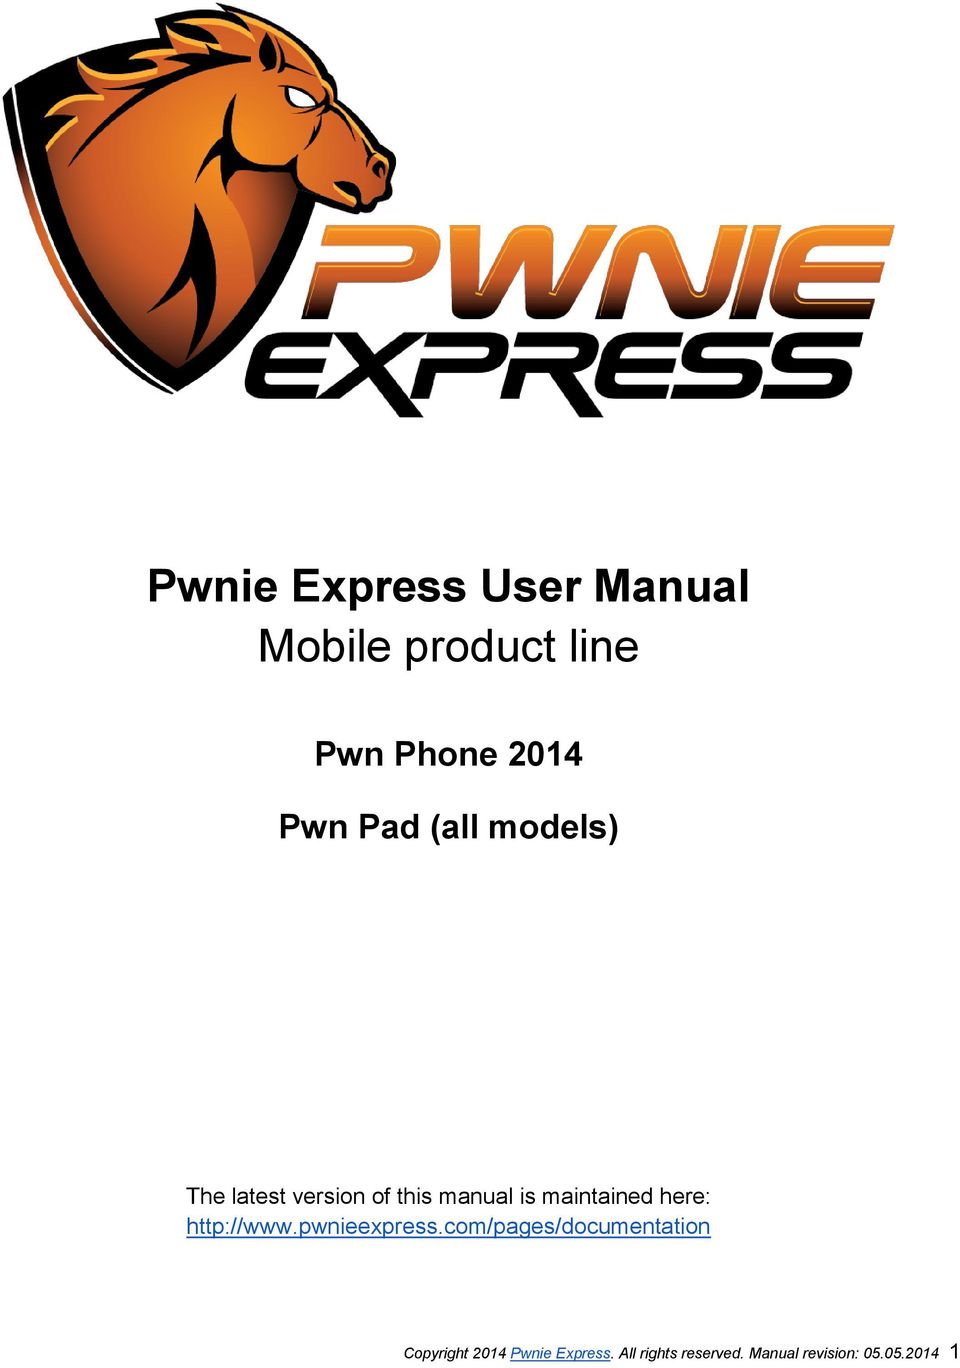 Pwnie Express User Manual Mobile product line - PDF